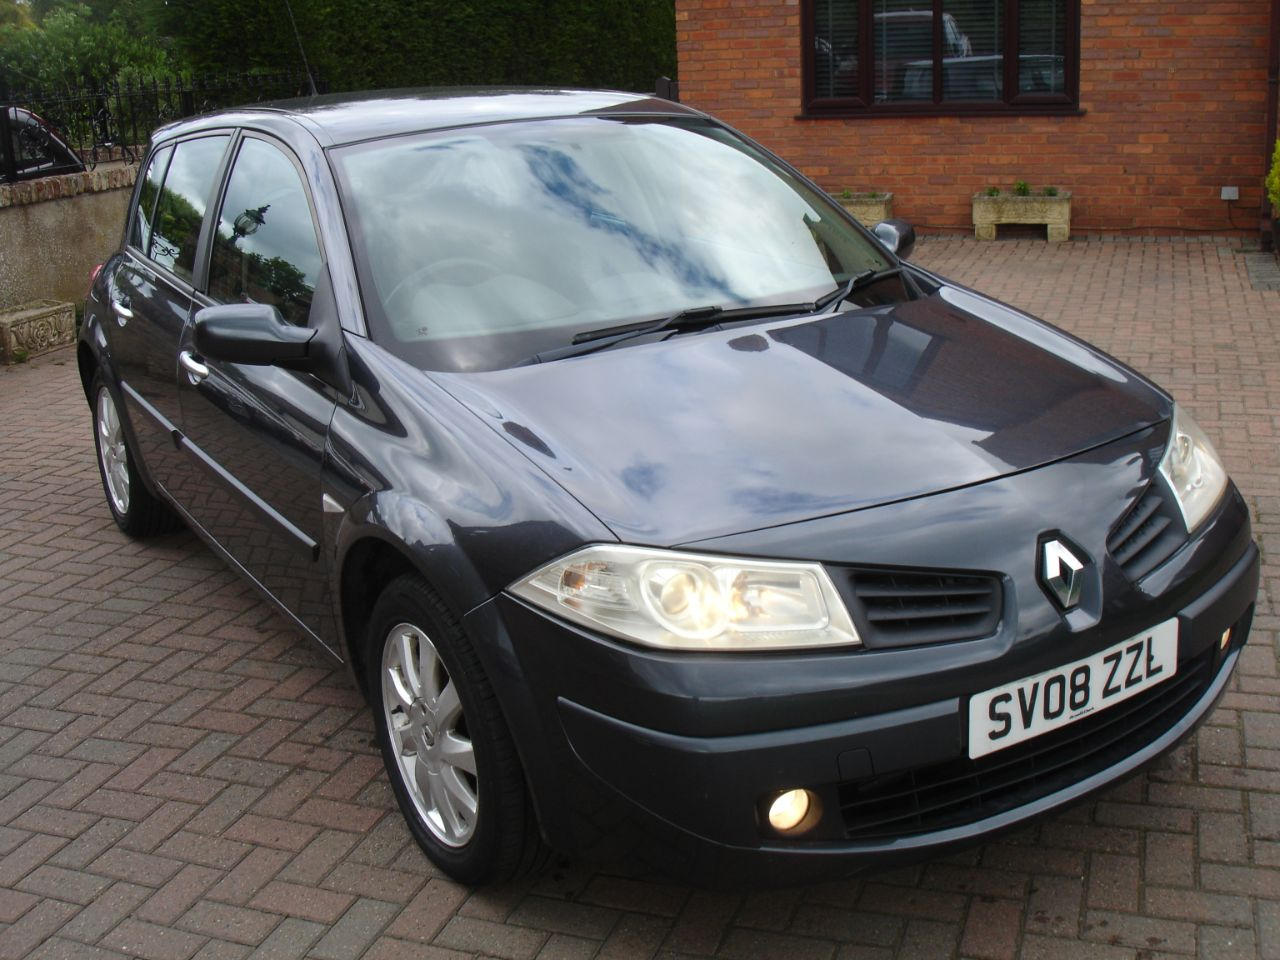 Renault Megane 1.6 VVT Dynamique 5dr Auto Hatchback Petrol Metallic Grey at Level Pitch Selby